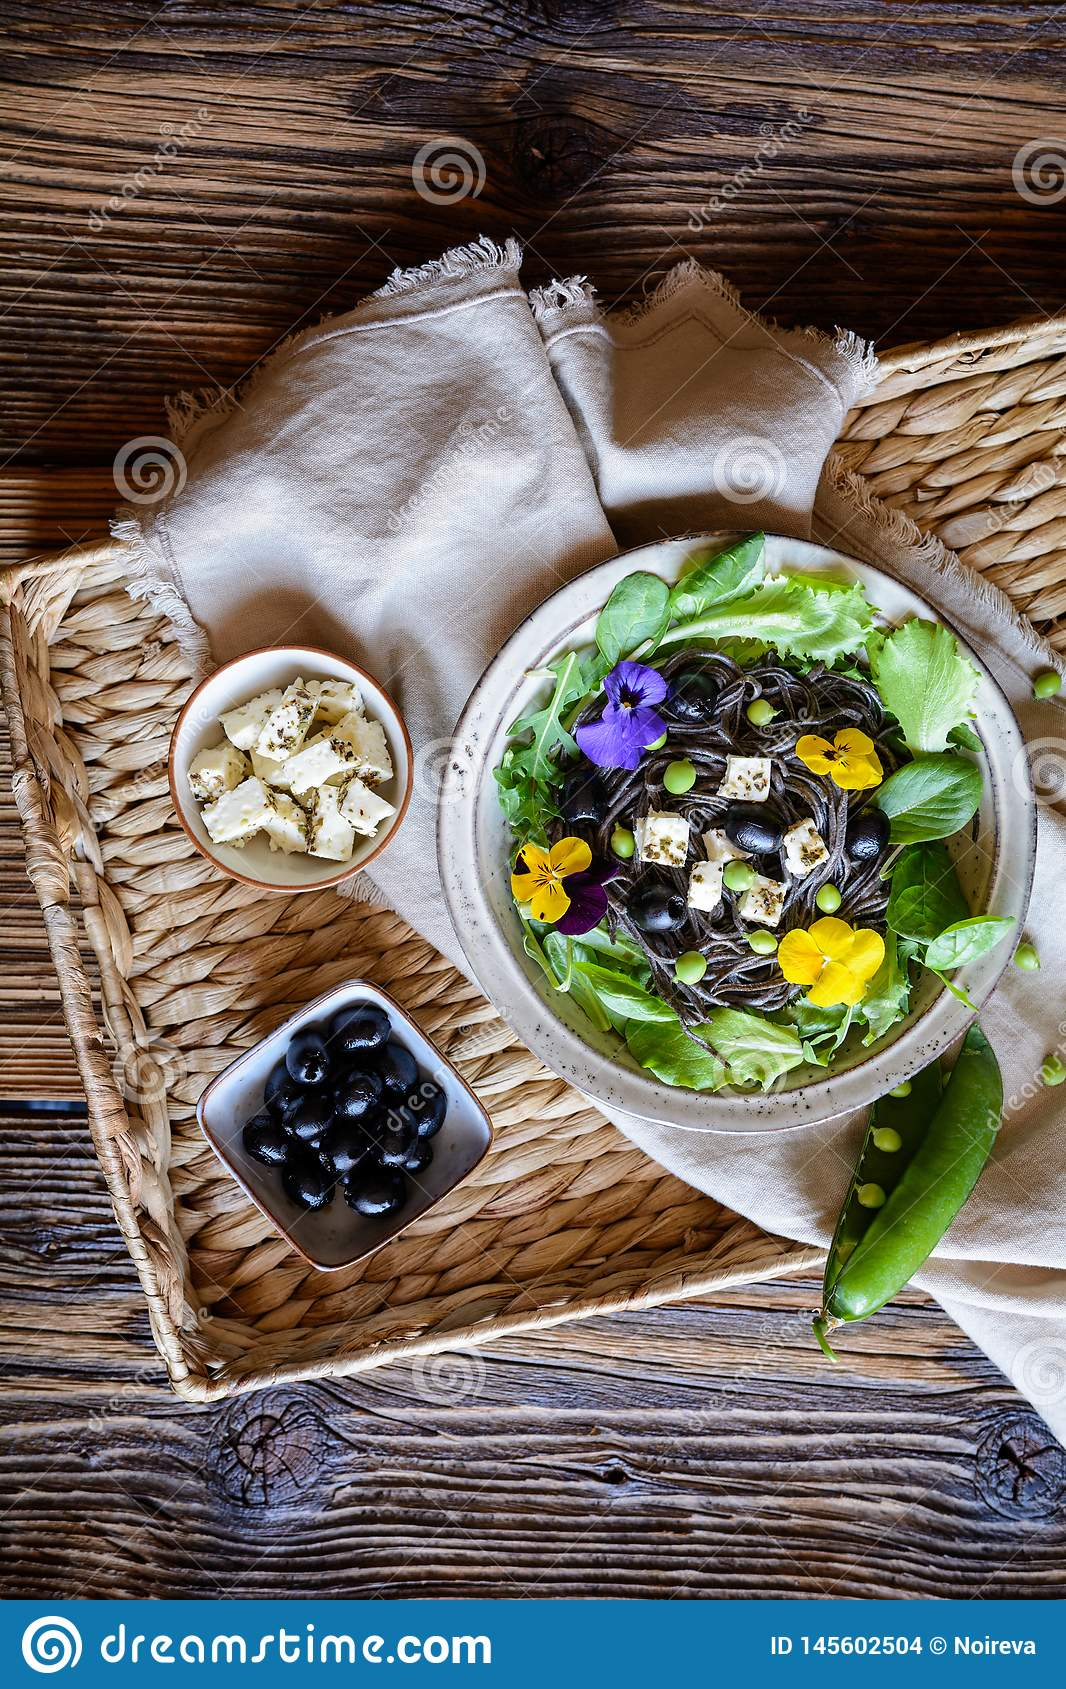 Black bean pasta salad with leafy greens, olives, green peas, sheep cheese and edible flowers